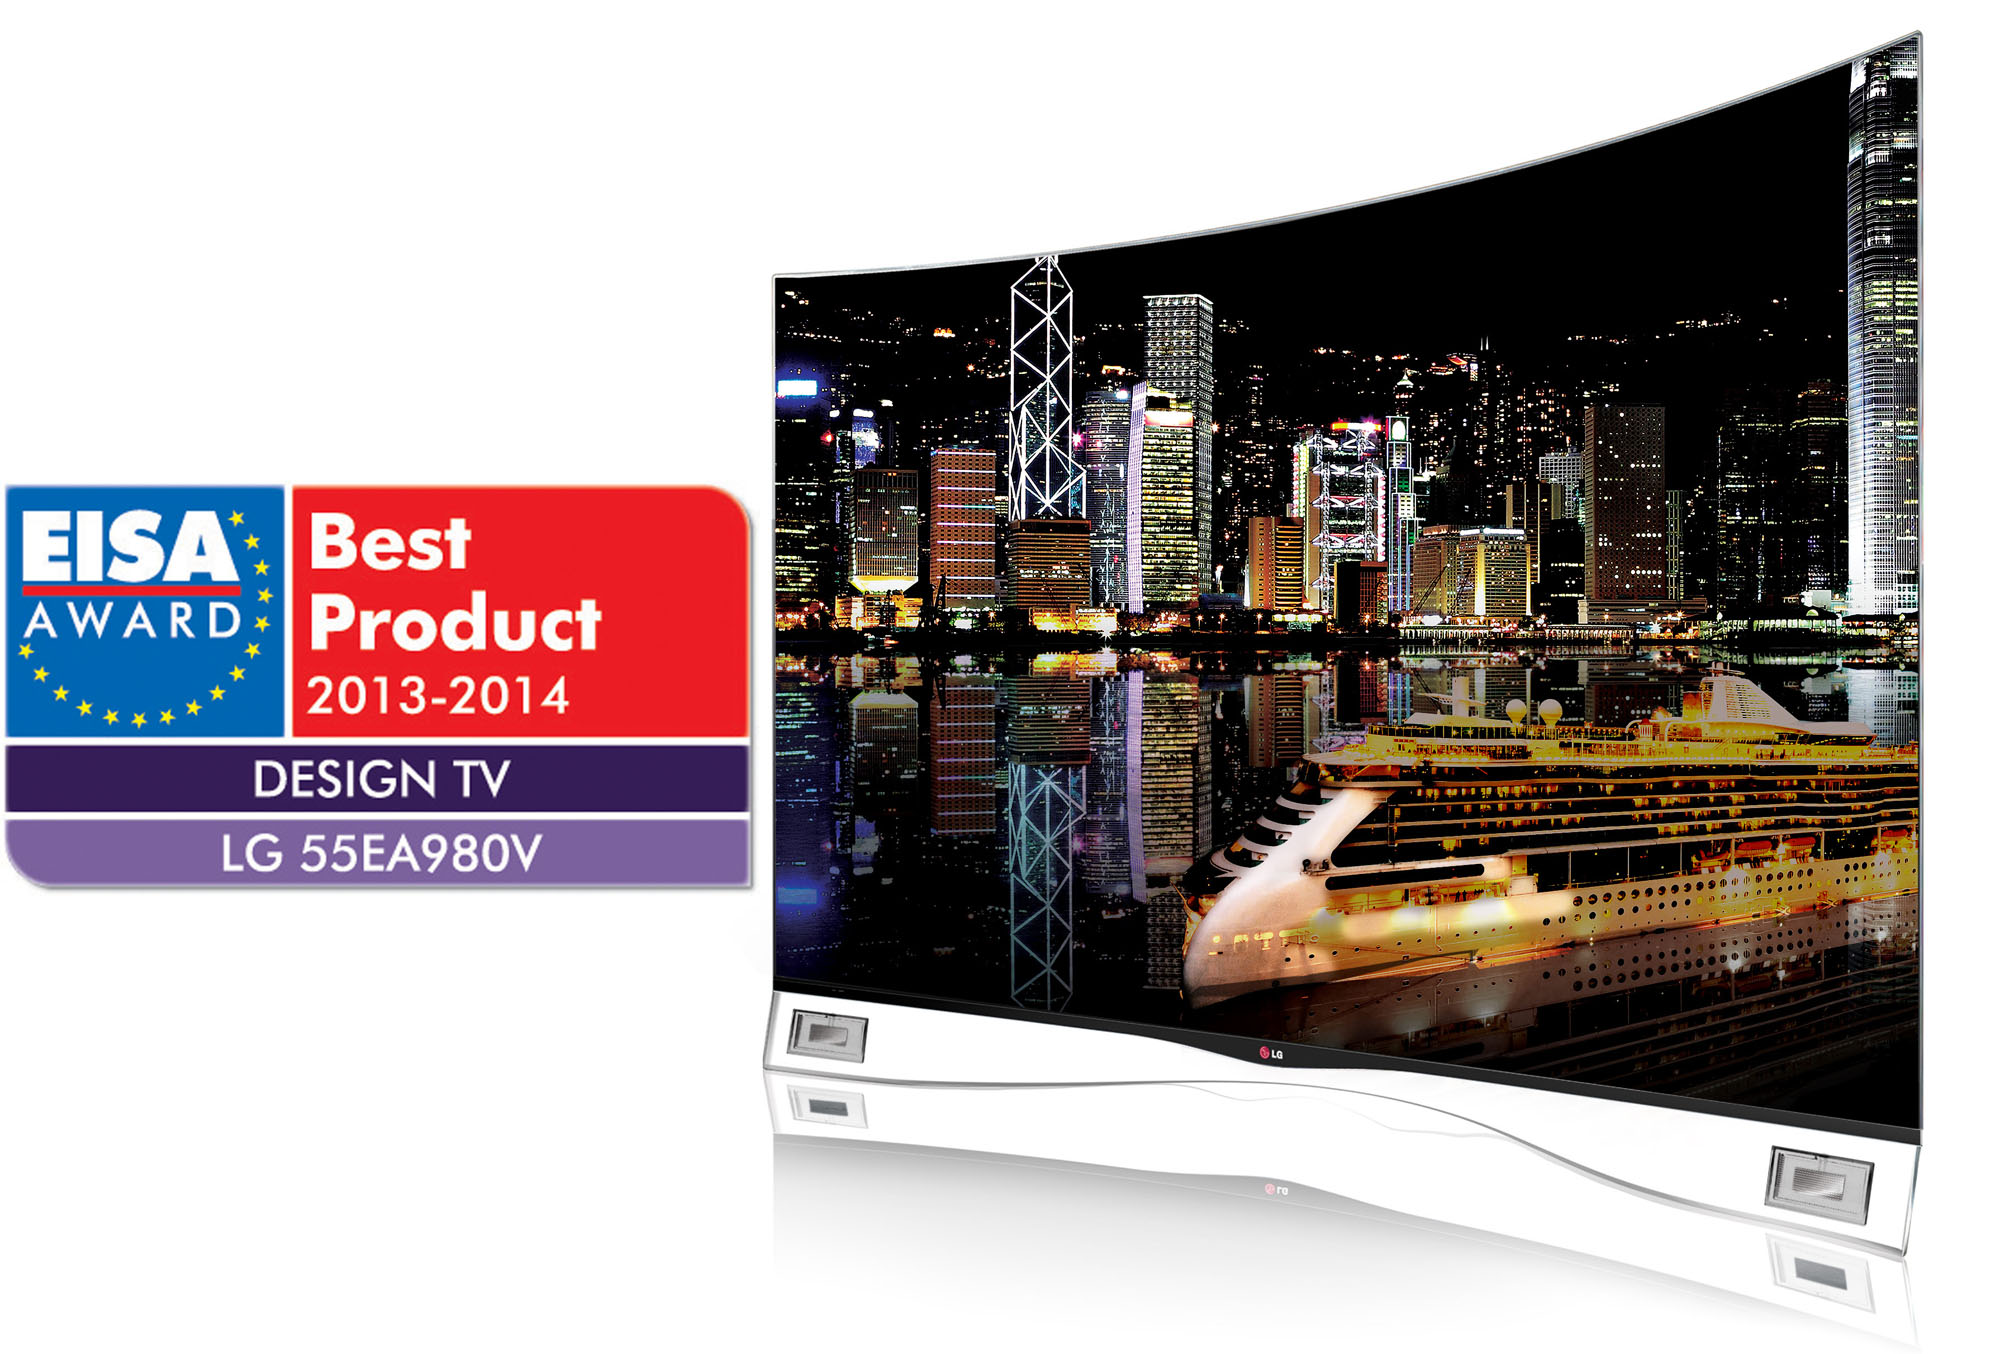 The European Imaging and Sound Association (EISA) Awards logo next to a right-side view of the LG CURVED OLED TV model 55EA9800